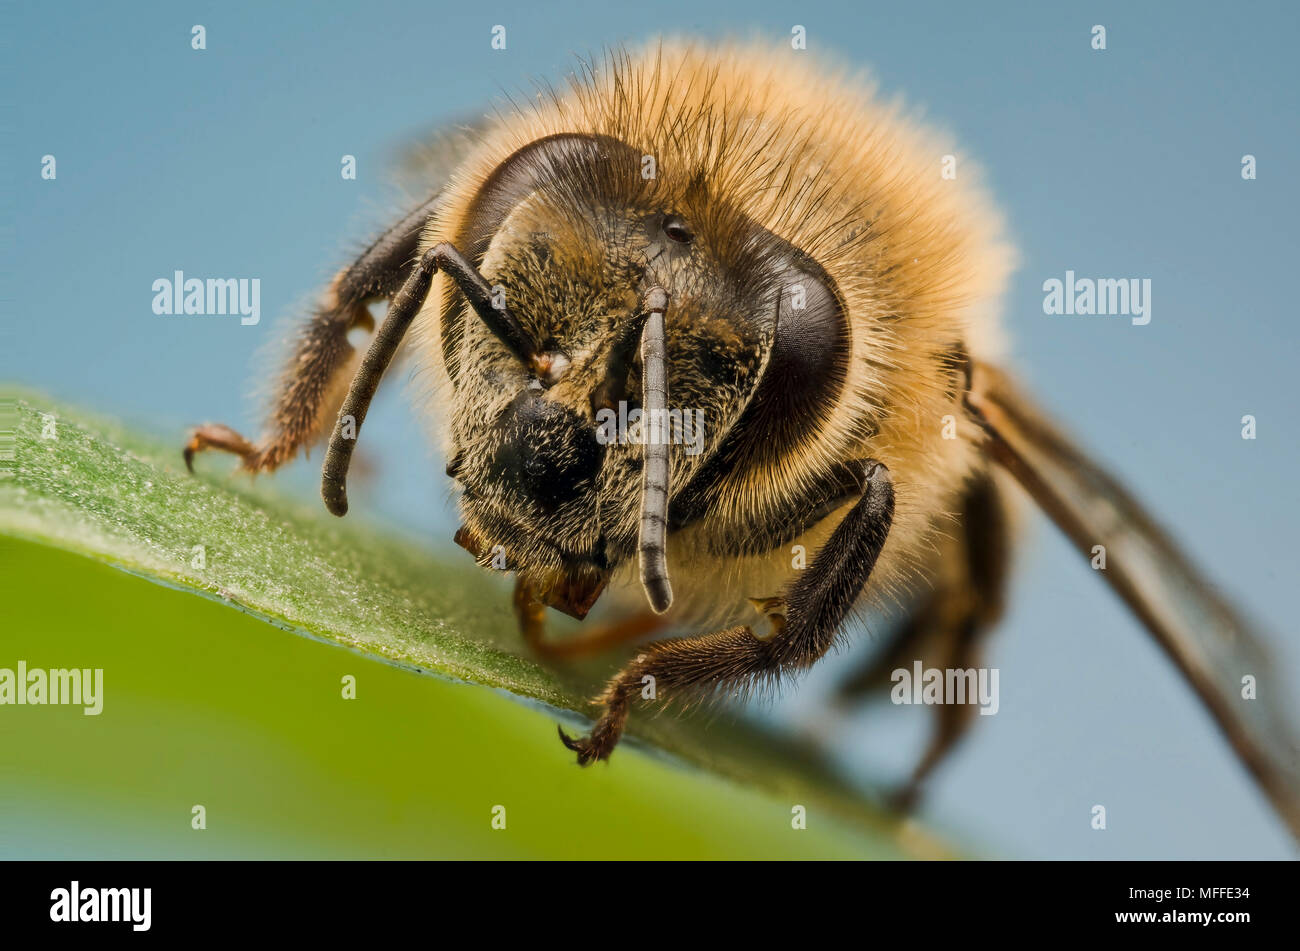 Honey bee - Stock Image